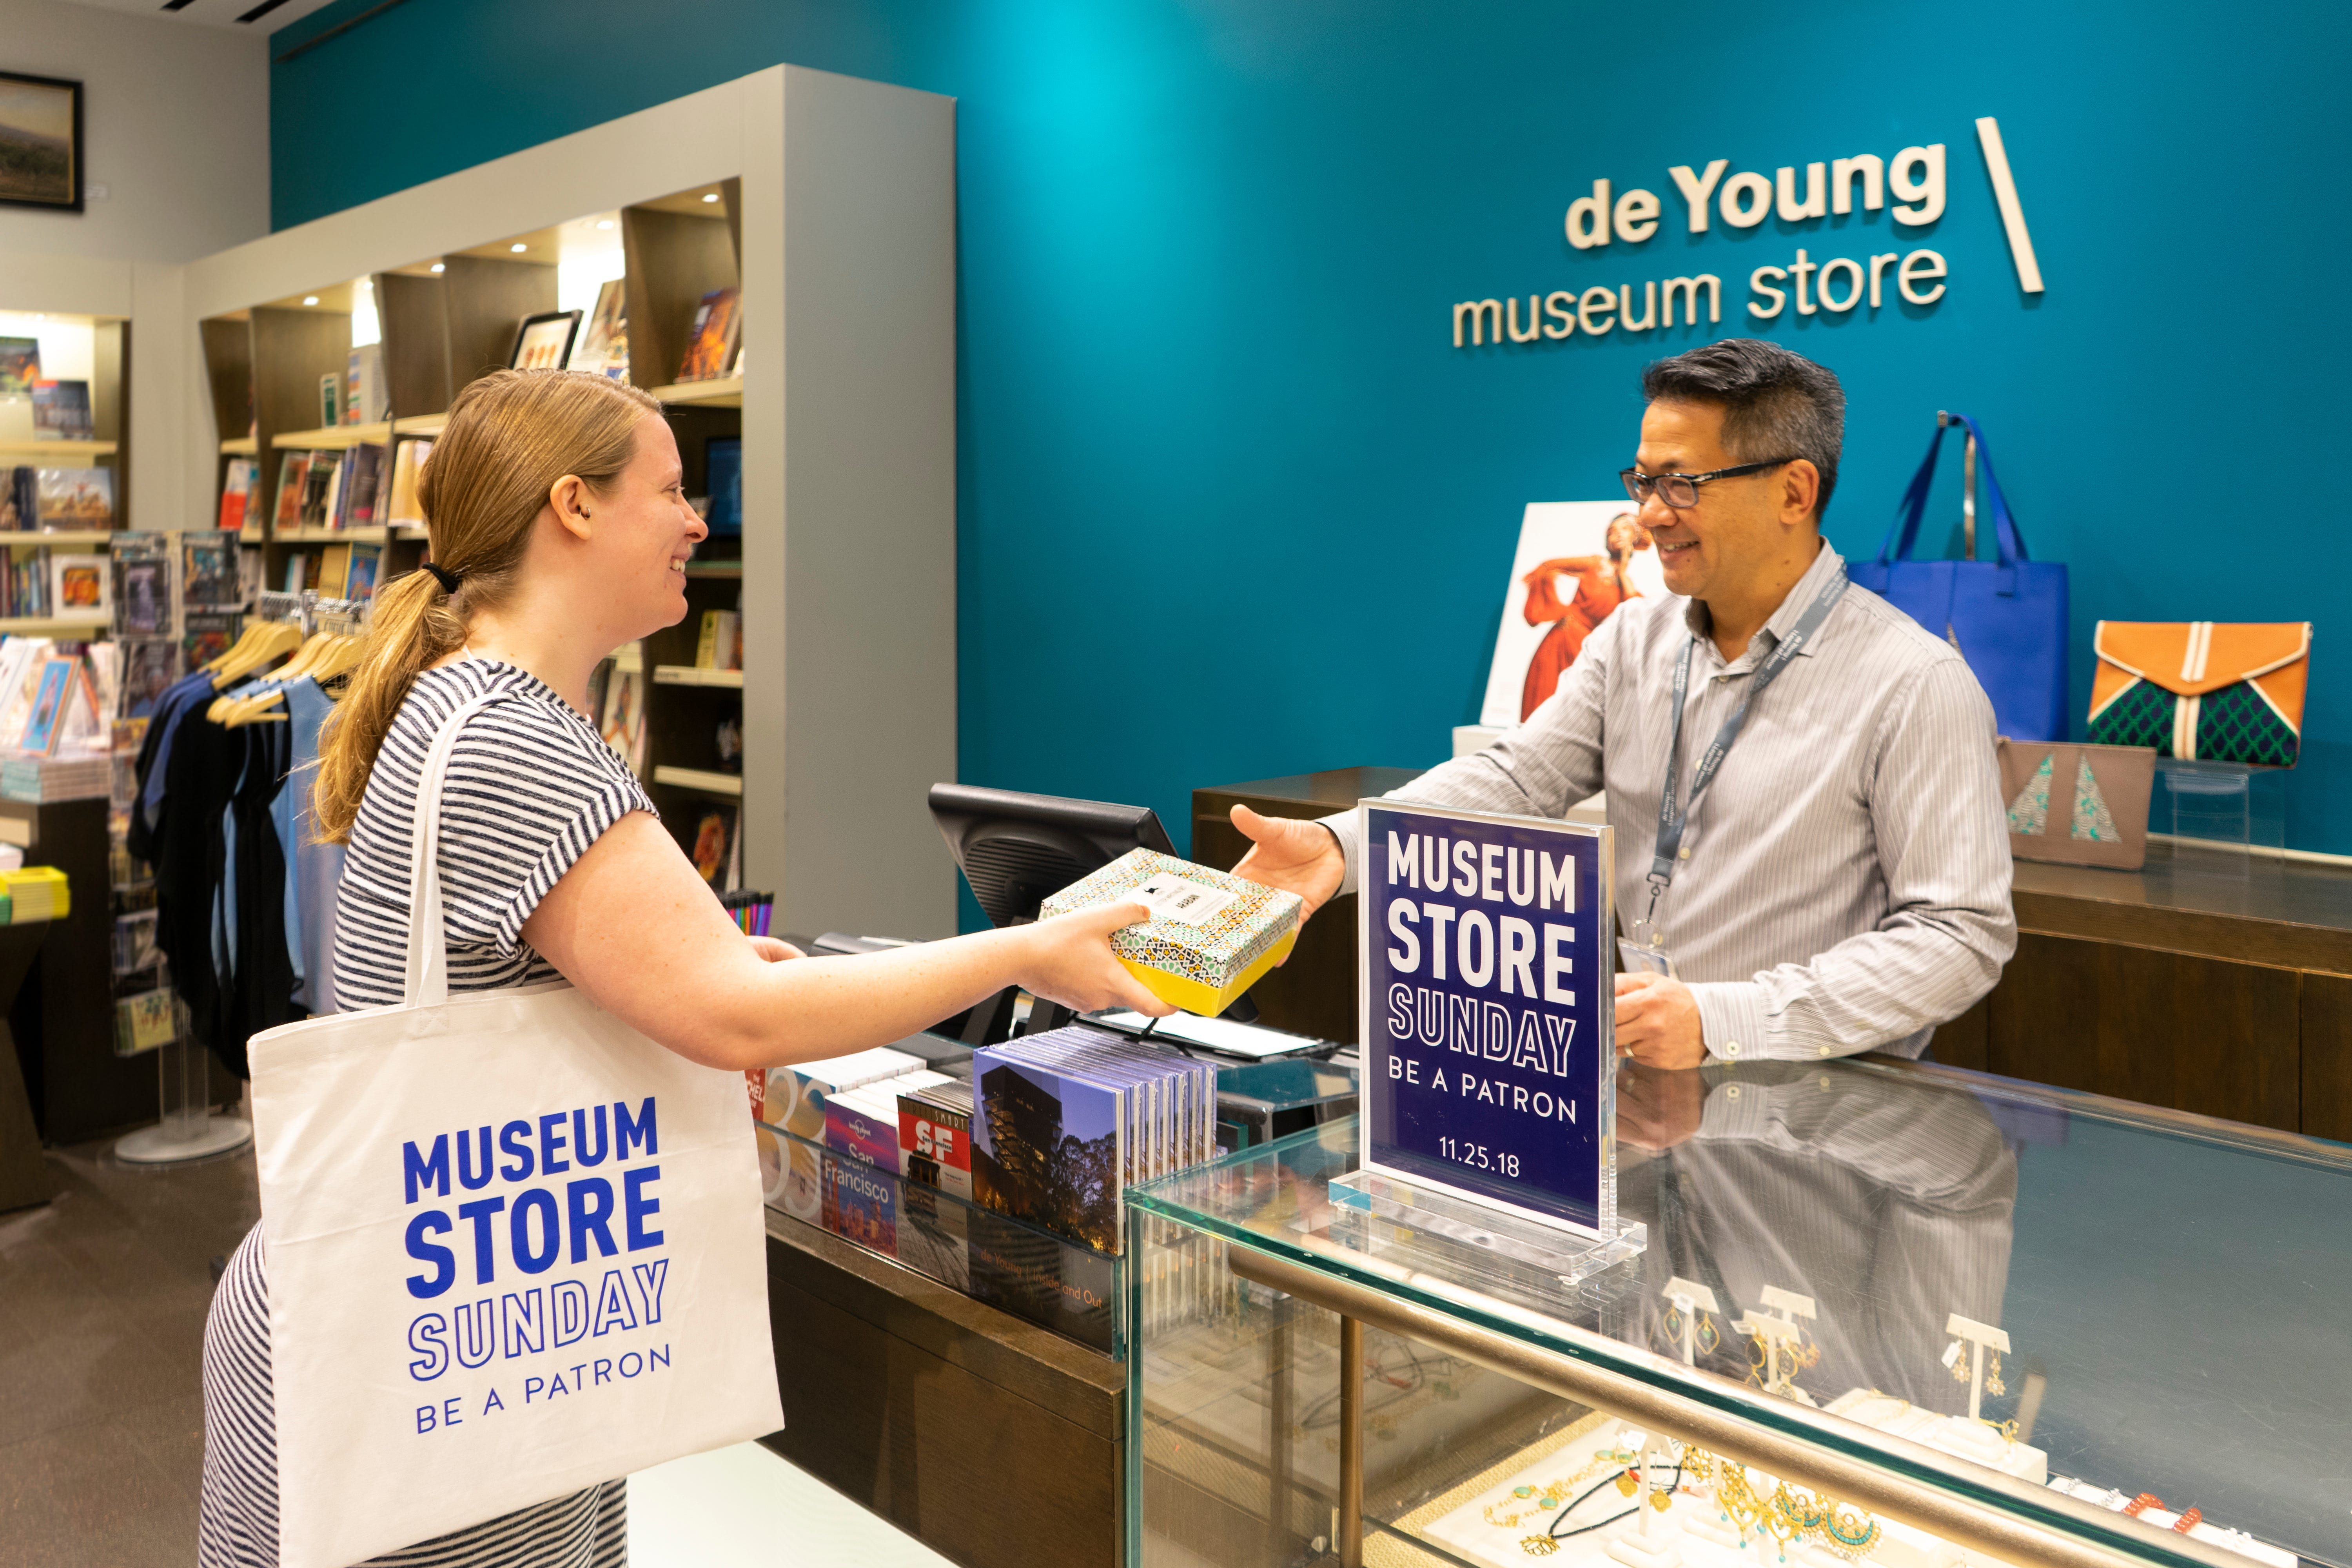 The M. H. de Young Memorial Museum in San Francisco is among cultural institutions around the country participating in Museum Store Sunday, an annual drive to get people to patronize the stores in their local museums. This year's Museum Store Sunday is Nov. 25.